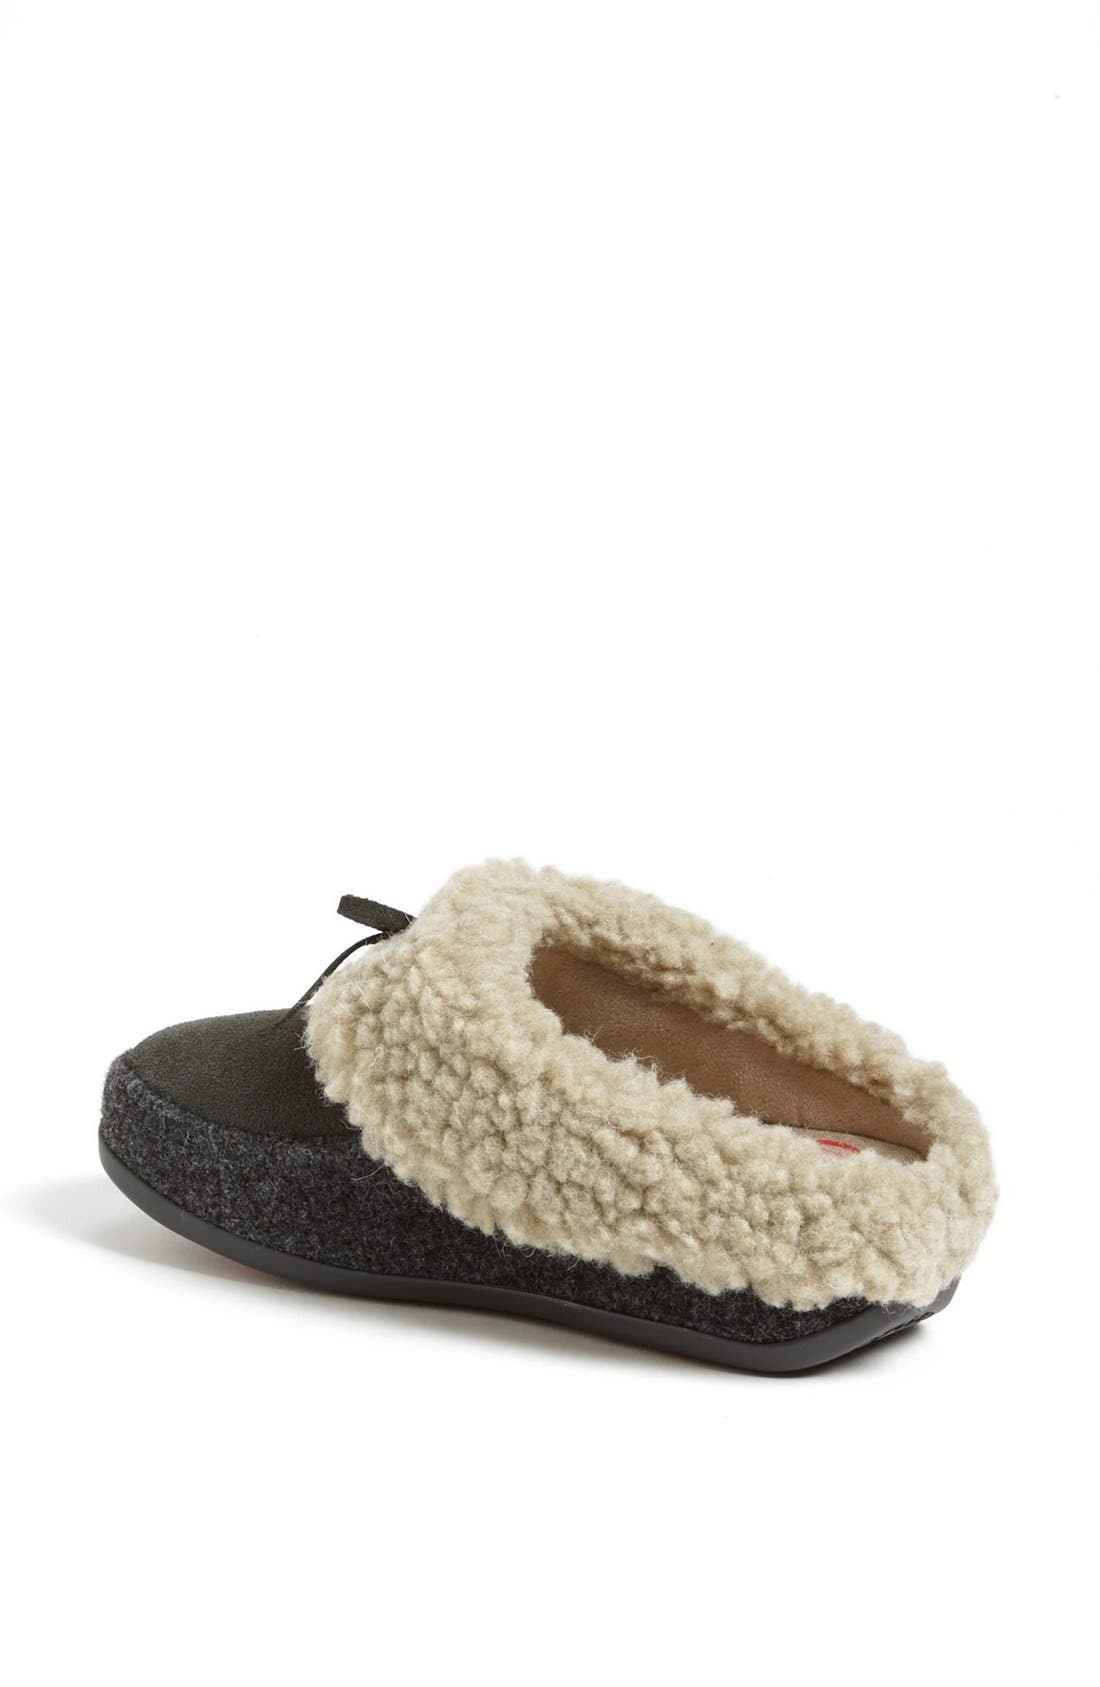 Alternate Image 2  - FitFlop 'The Cuddler™' Slipper